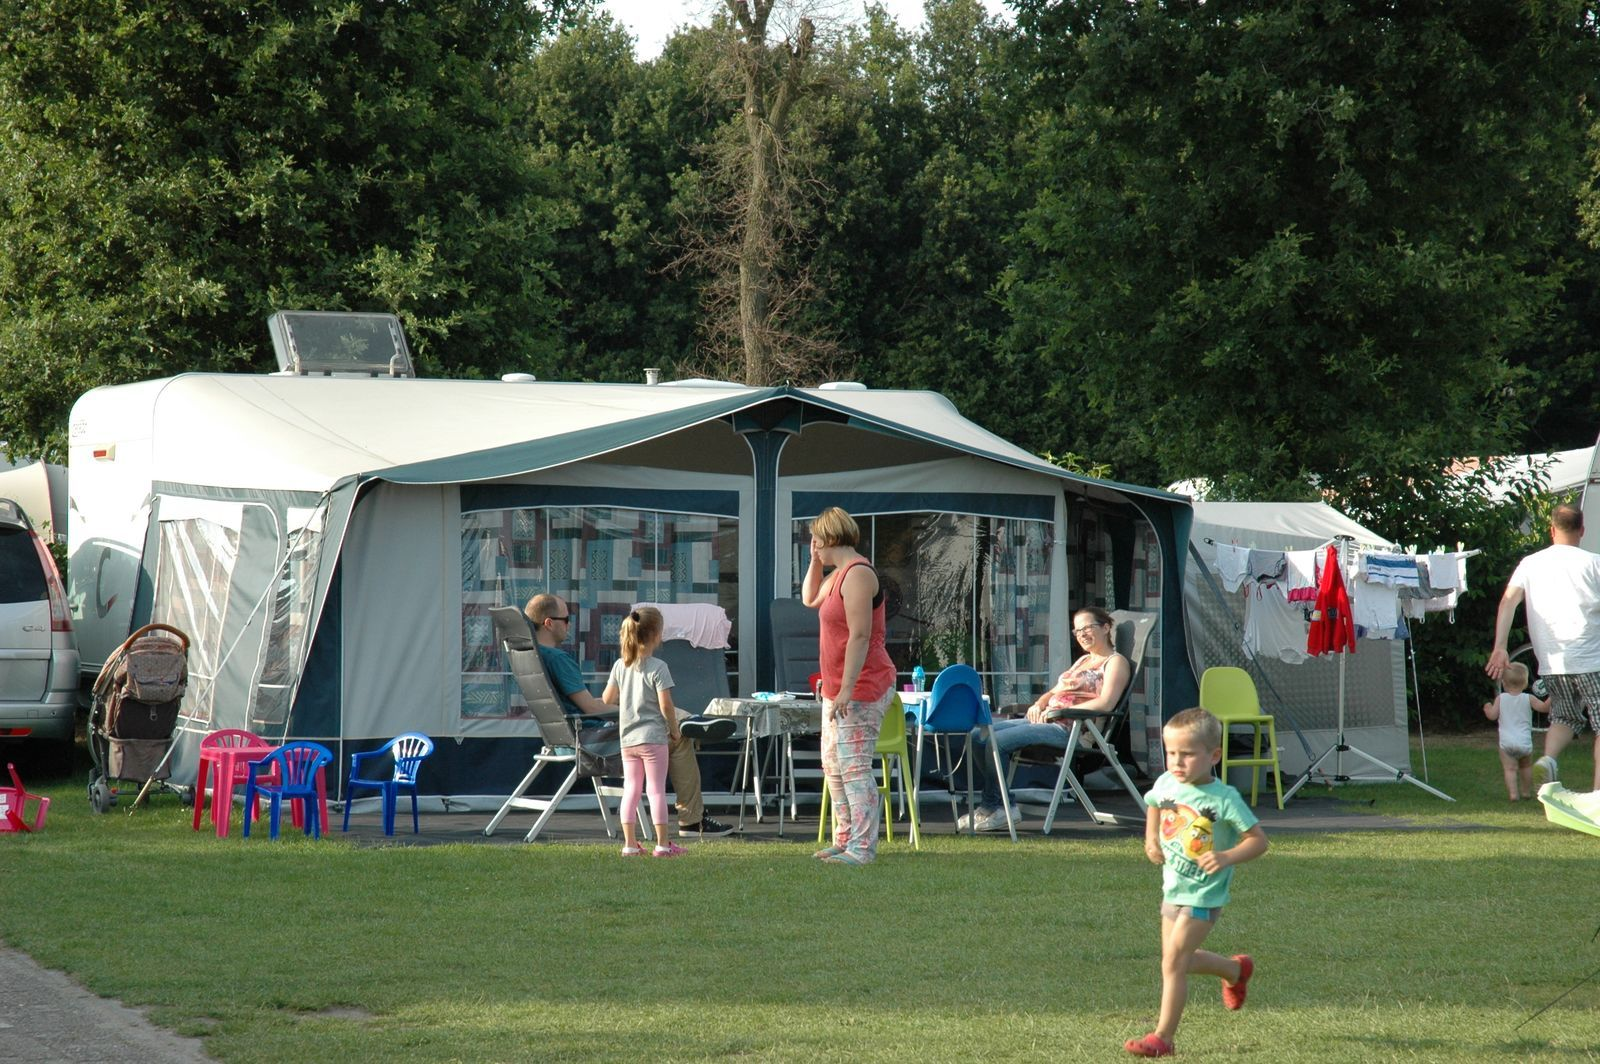 Camping pitch 'Comfort'